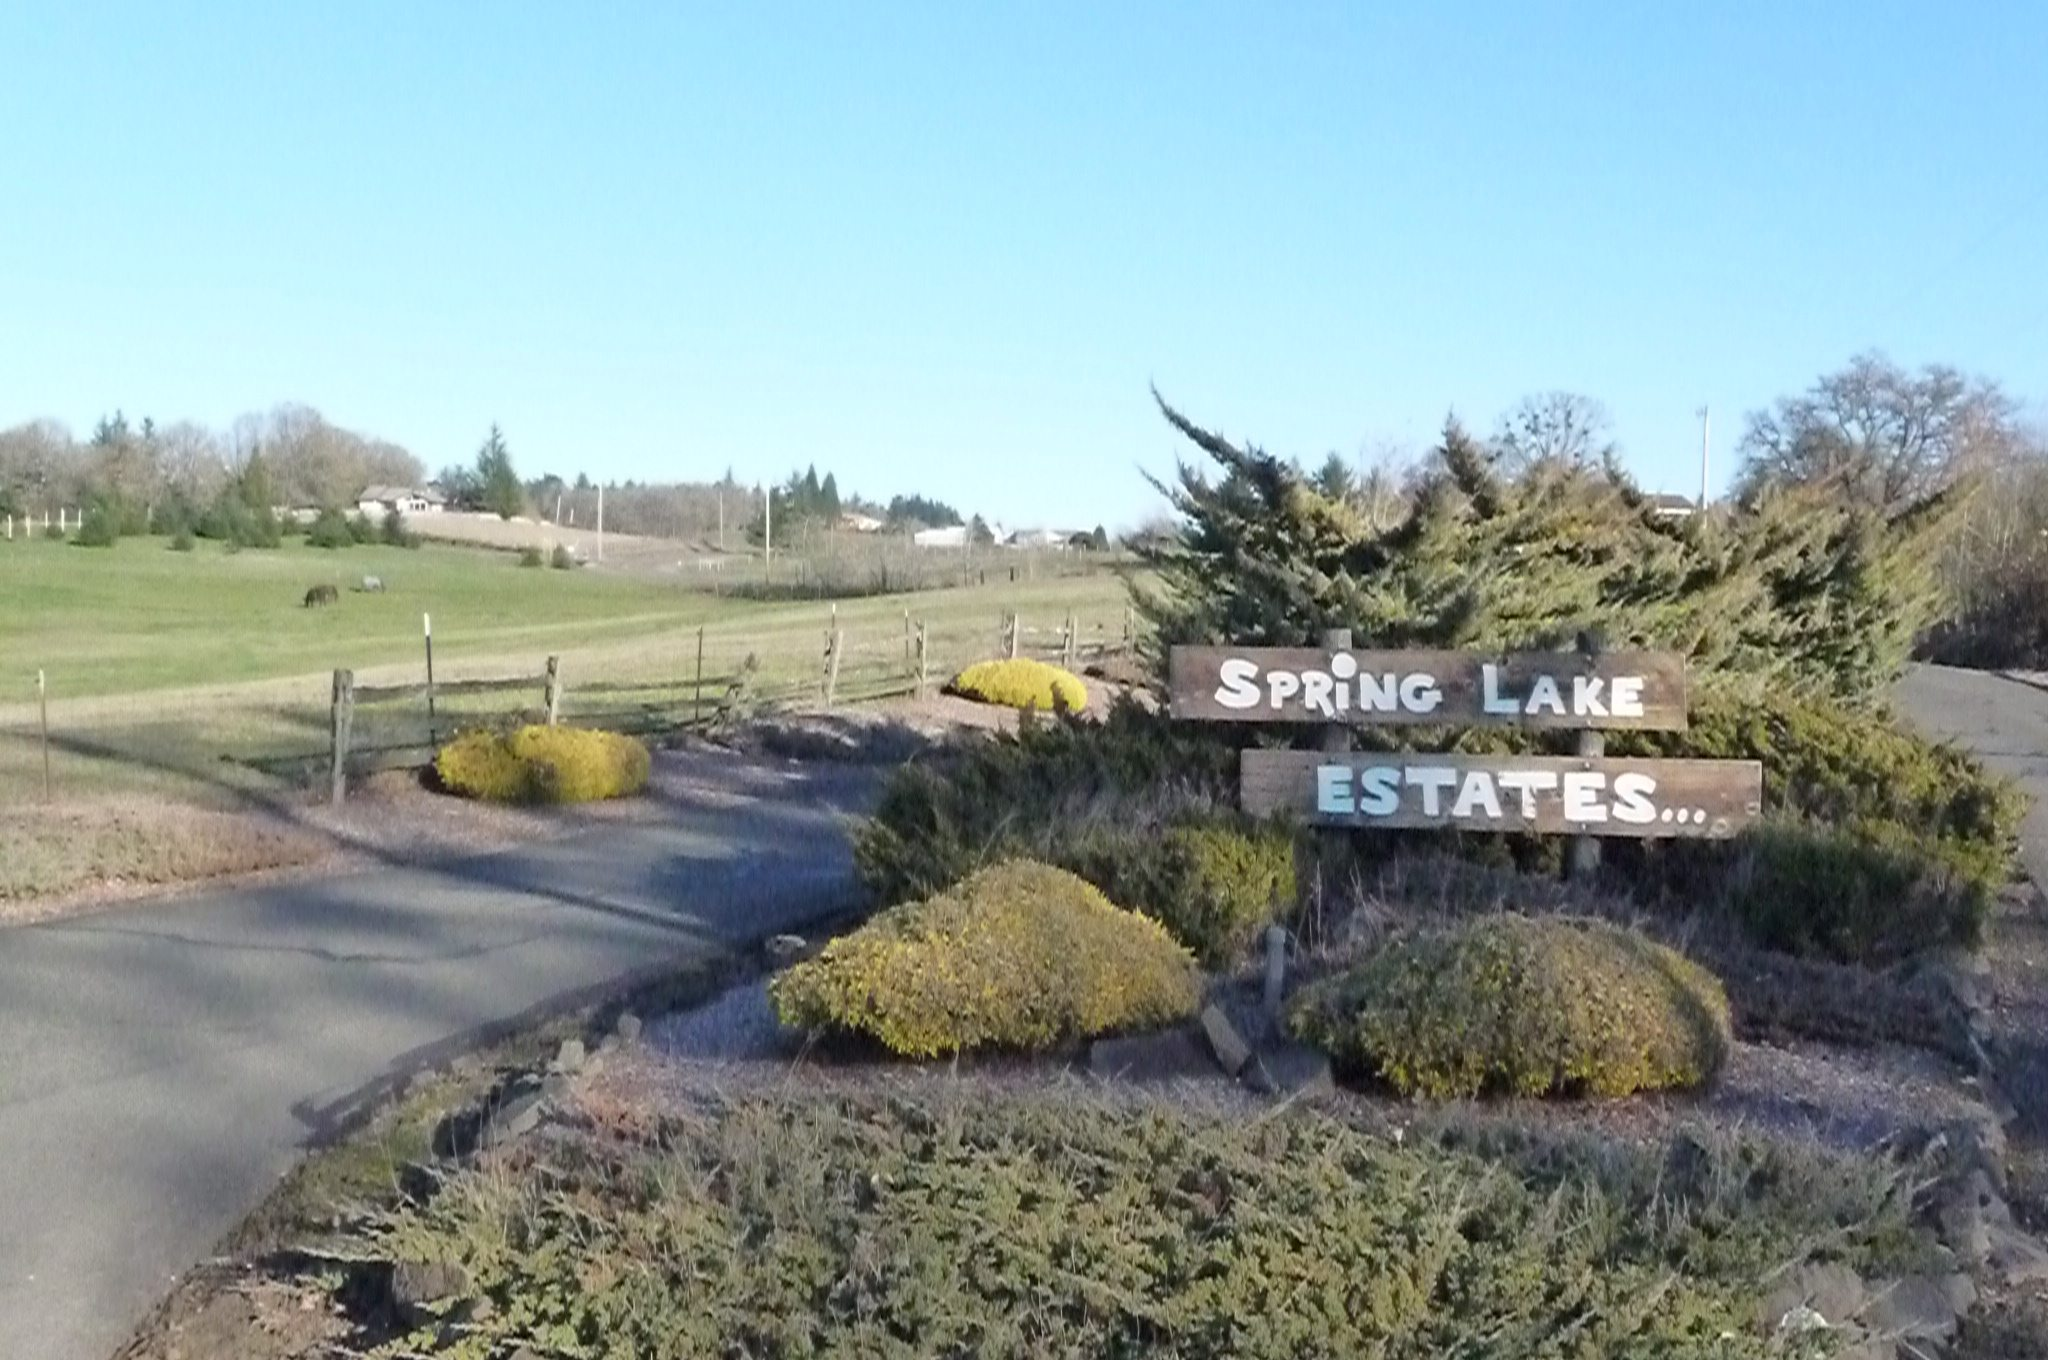 Entrance to Spring Lake Estates in Salem Oregon.  A second entrance is located off of Liberty RD, this one is from Ankeny Hill Rd, just a quick exit off I5.  Spring Lake Estates is an equine friendly subdivision in Salem, Oregon.